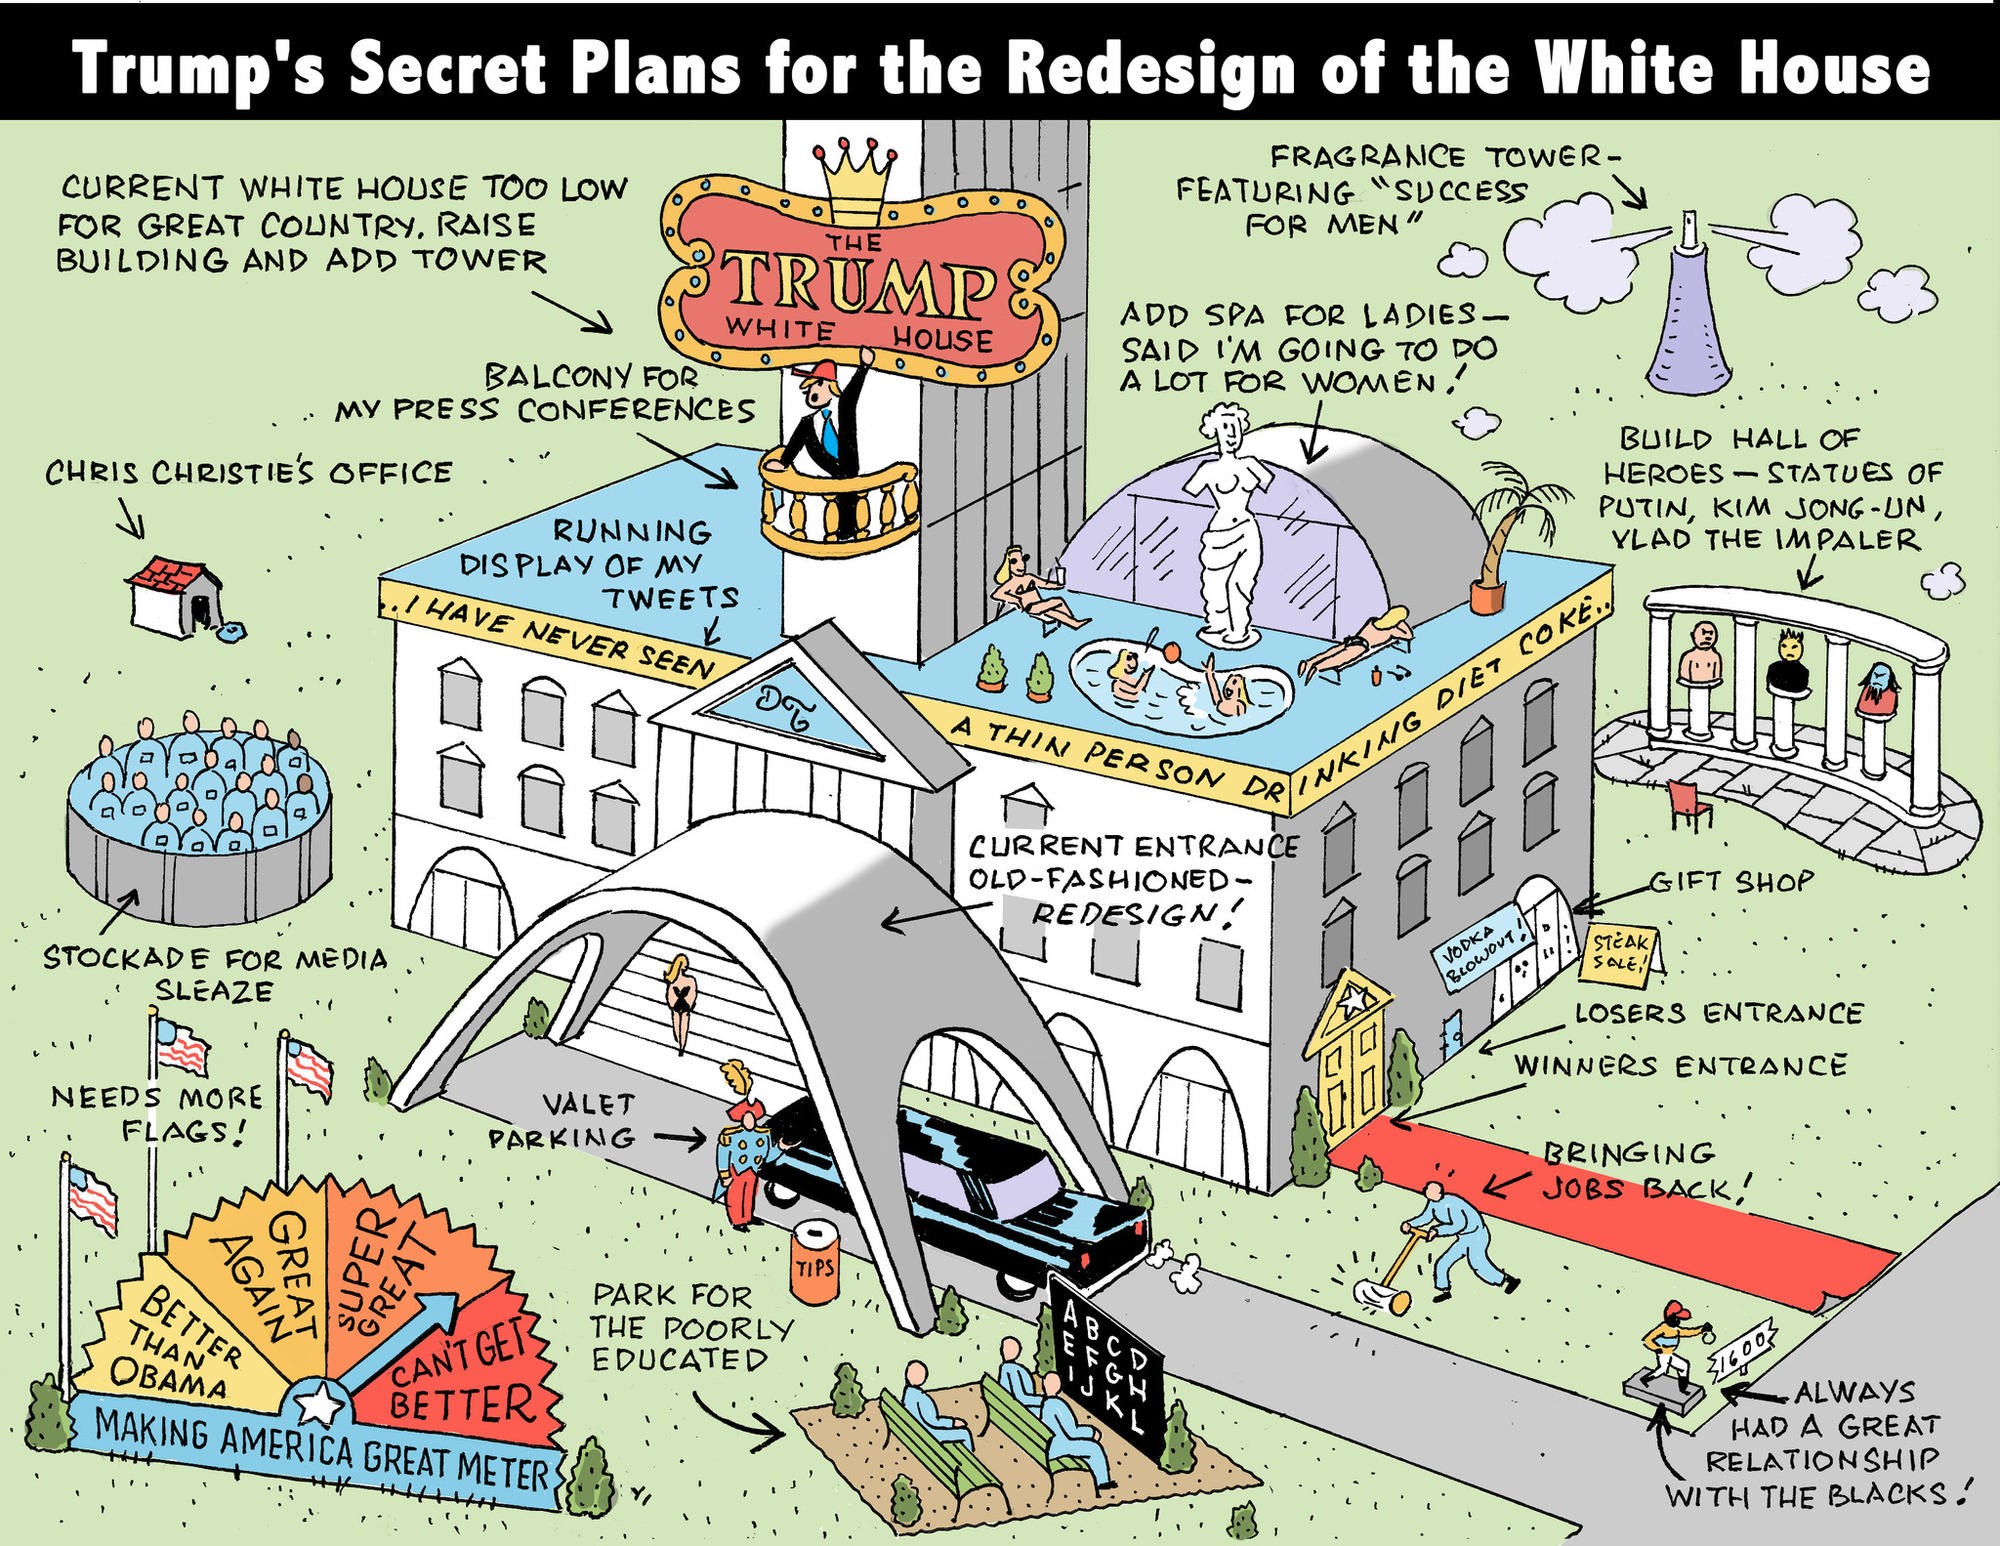 Donald Trumps secret plan for the redesign of the White House